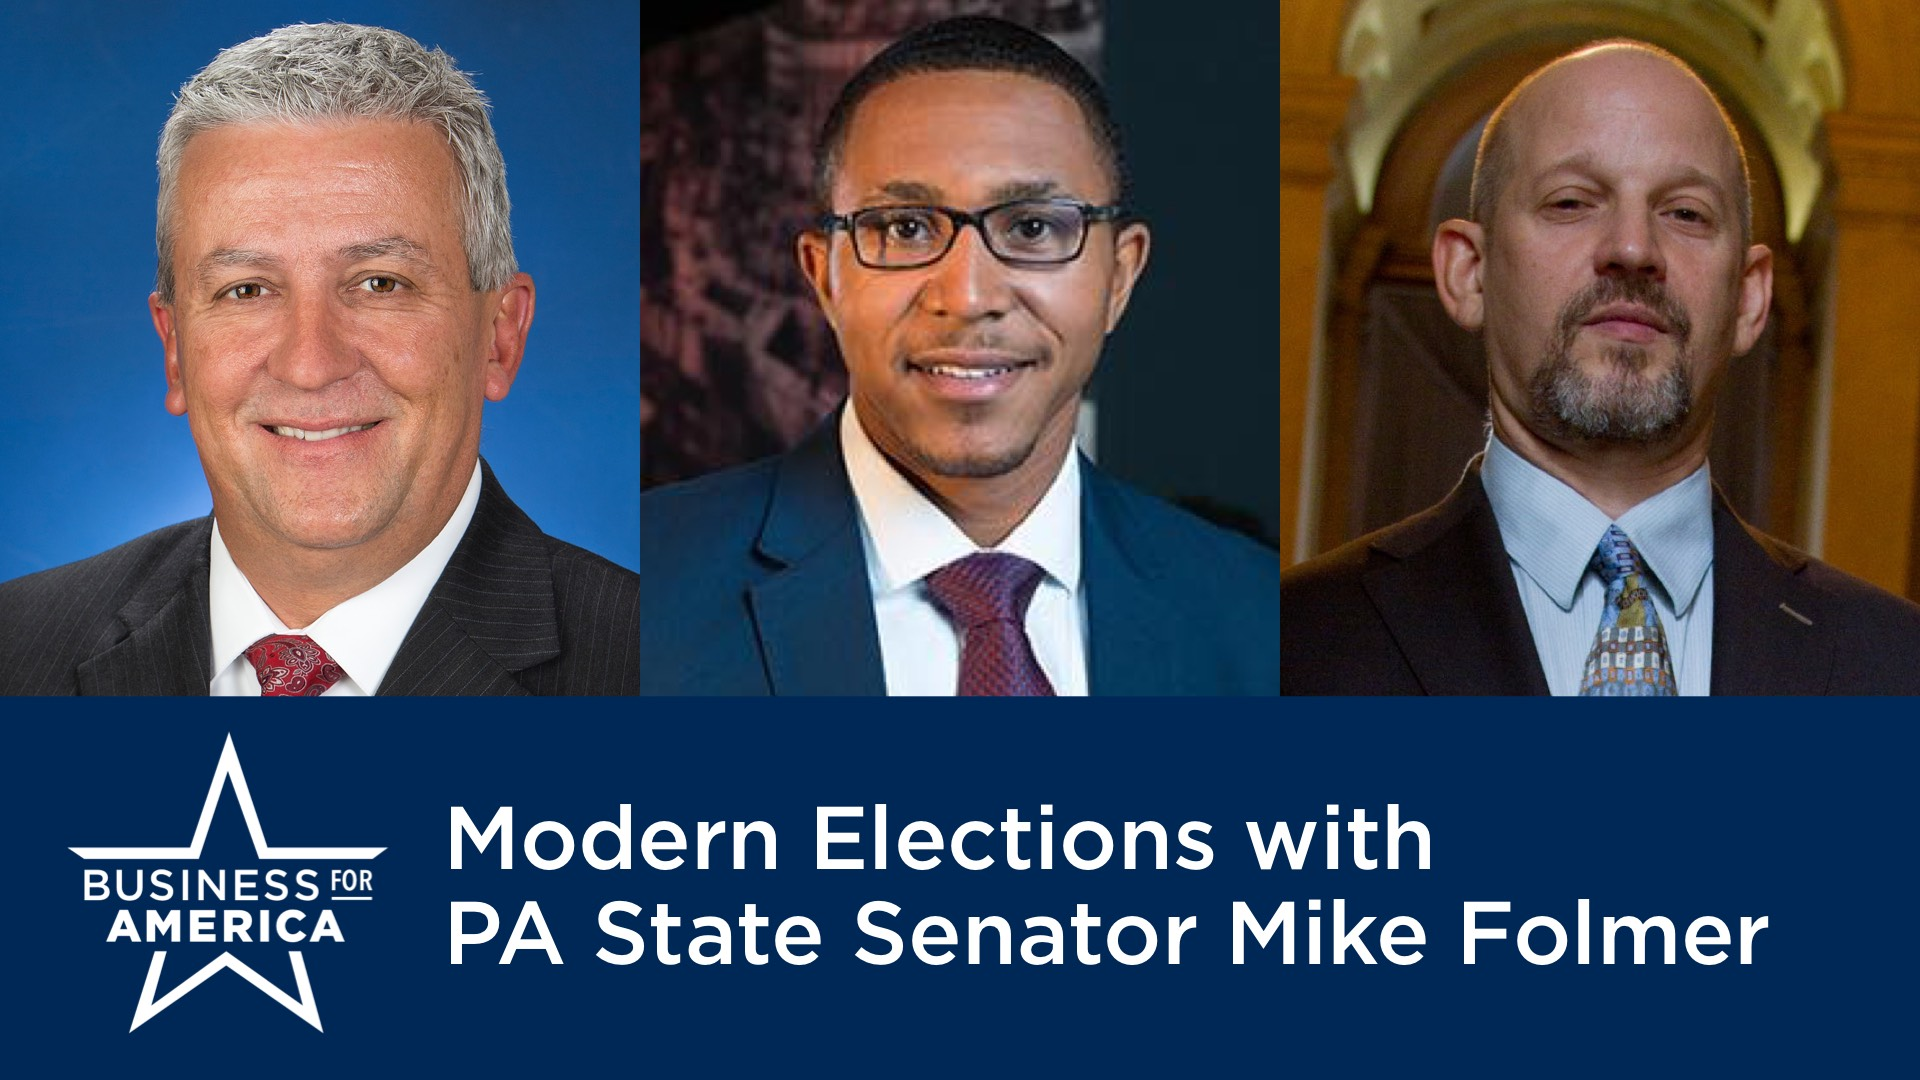 Modern Elections with Pennsylvania State Senator Mike Folmer